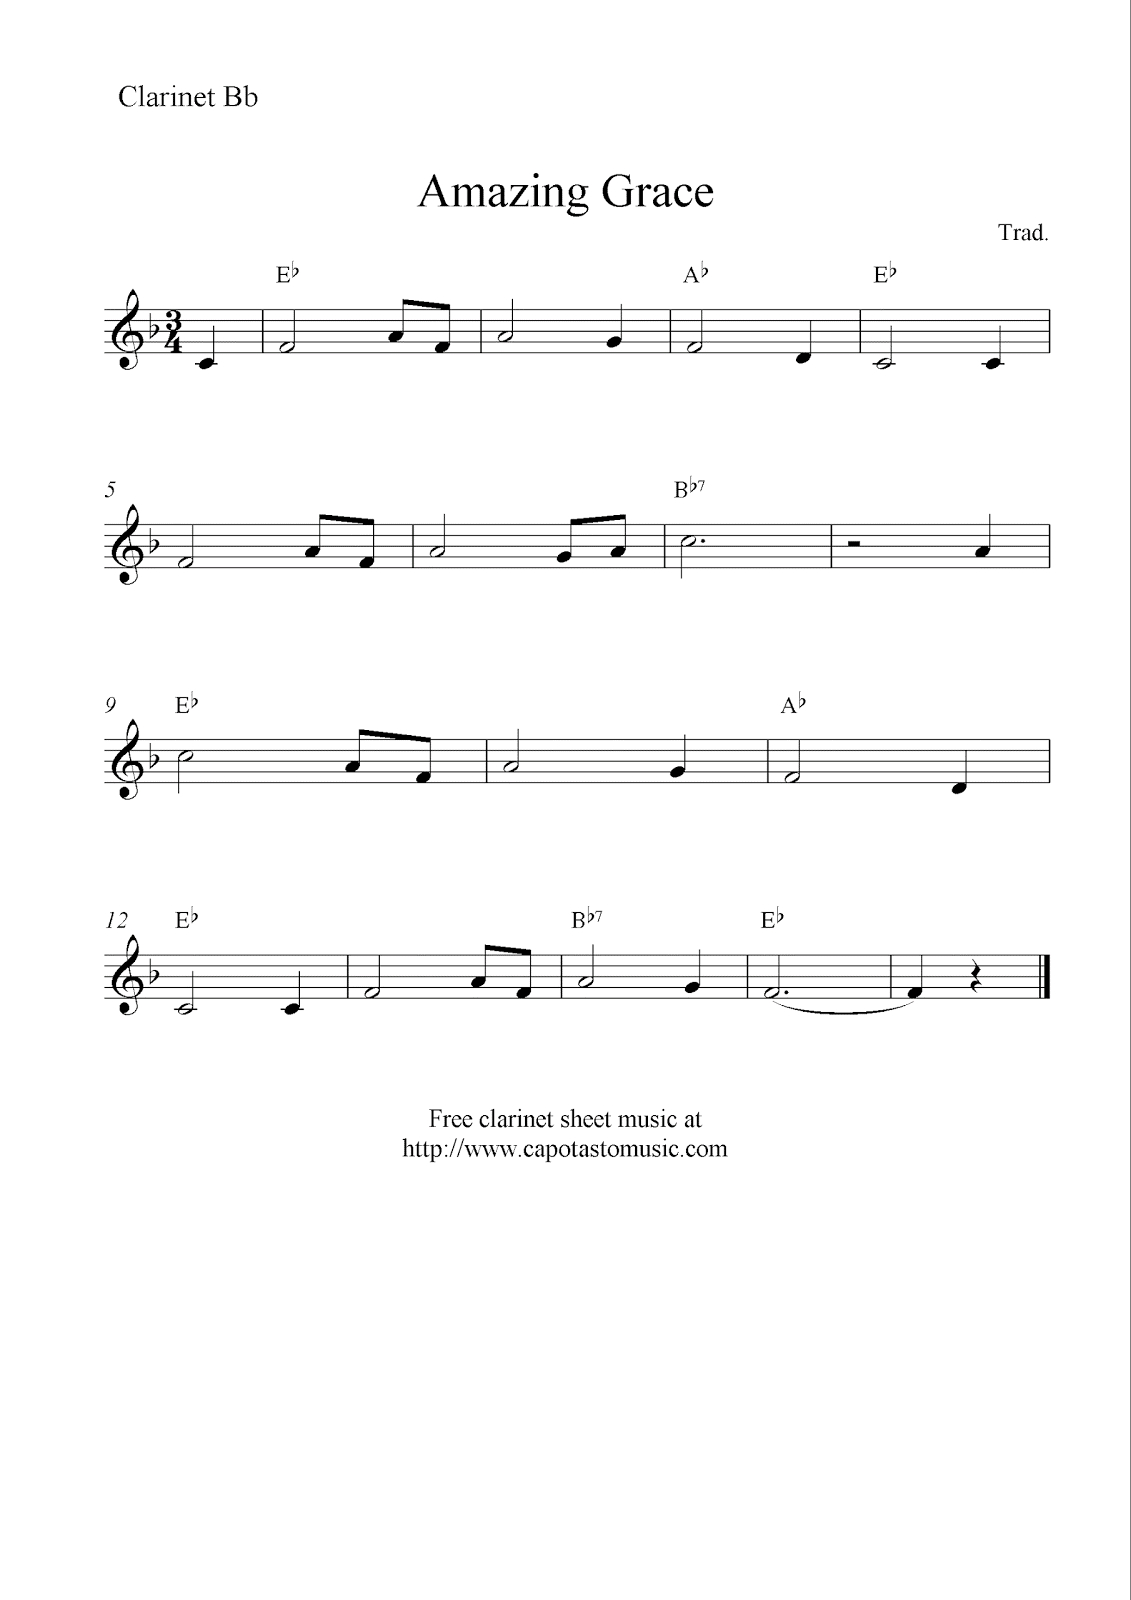 Amazing Grace, Free Clarinet Sheet Music Notes - Free Sheet Music For Clarinet Printable